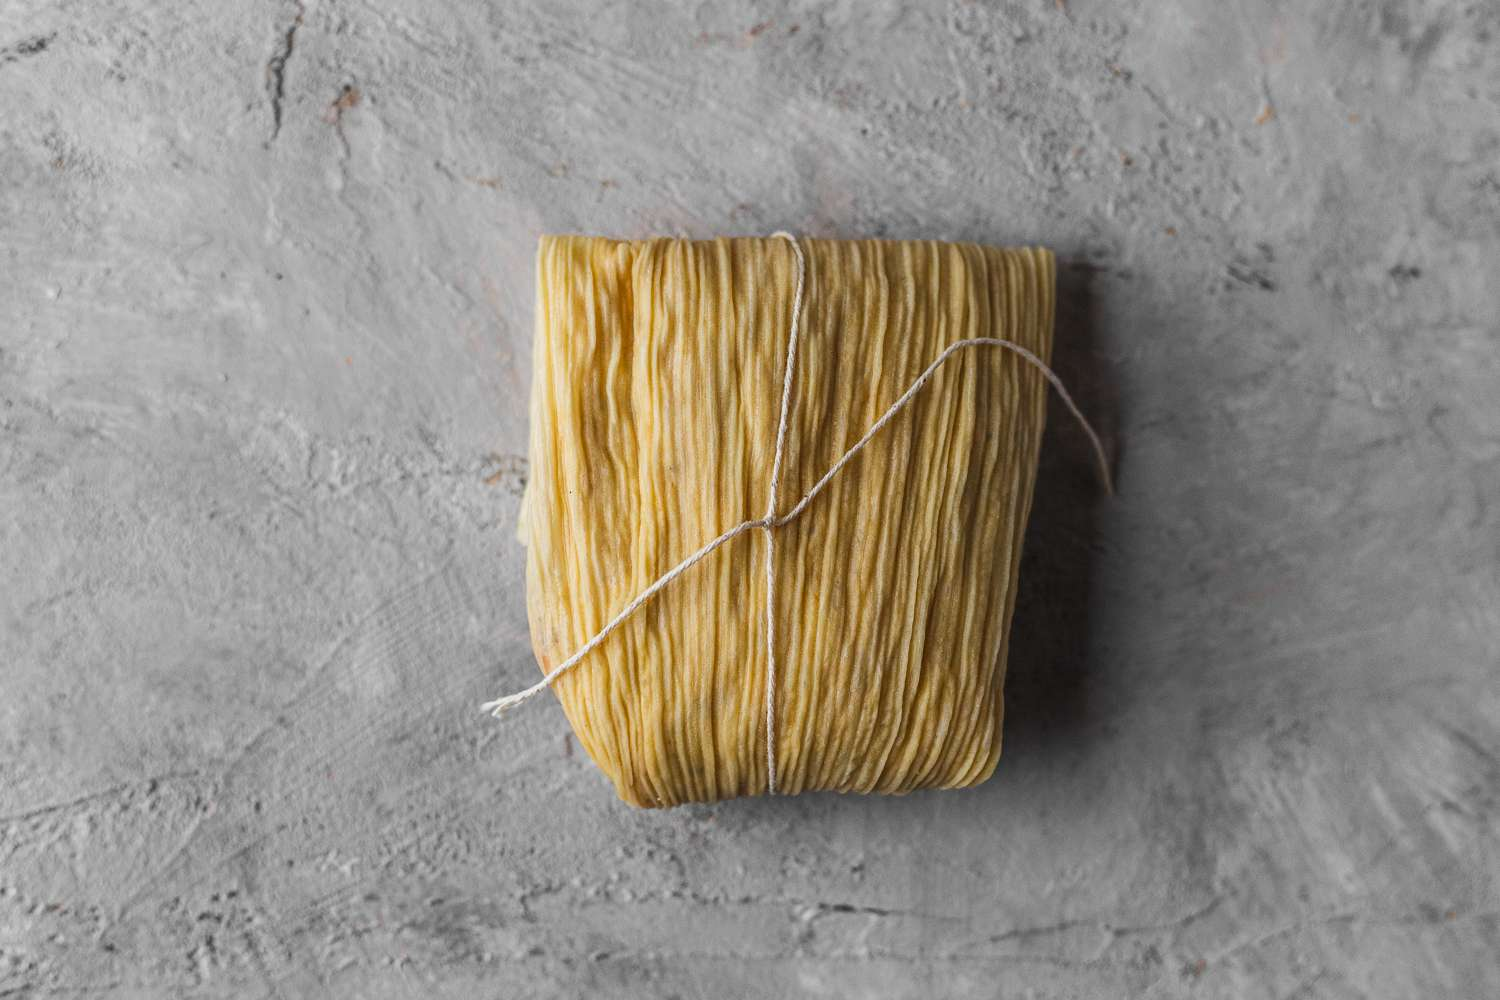 tamale wrapped and tied with a string